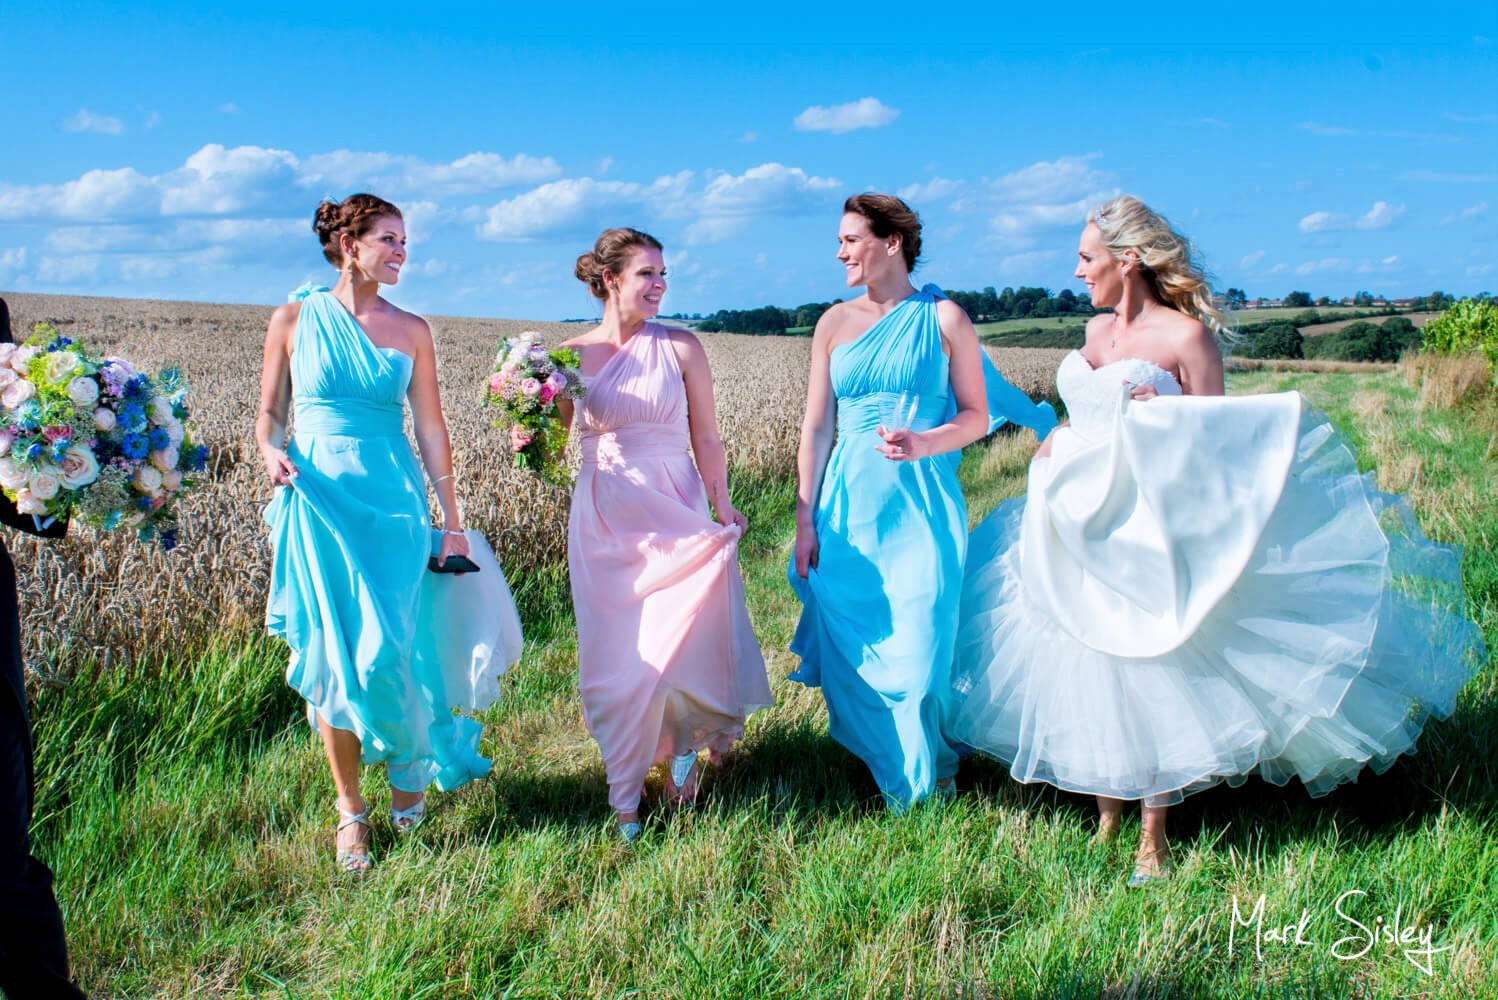 Walking in the grounds at Notley Tythe Barn wedding